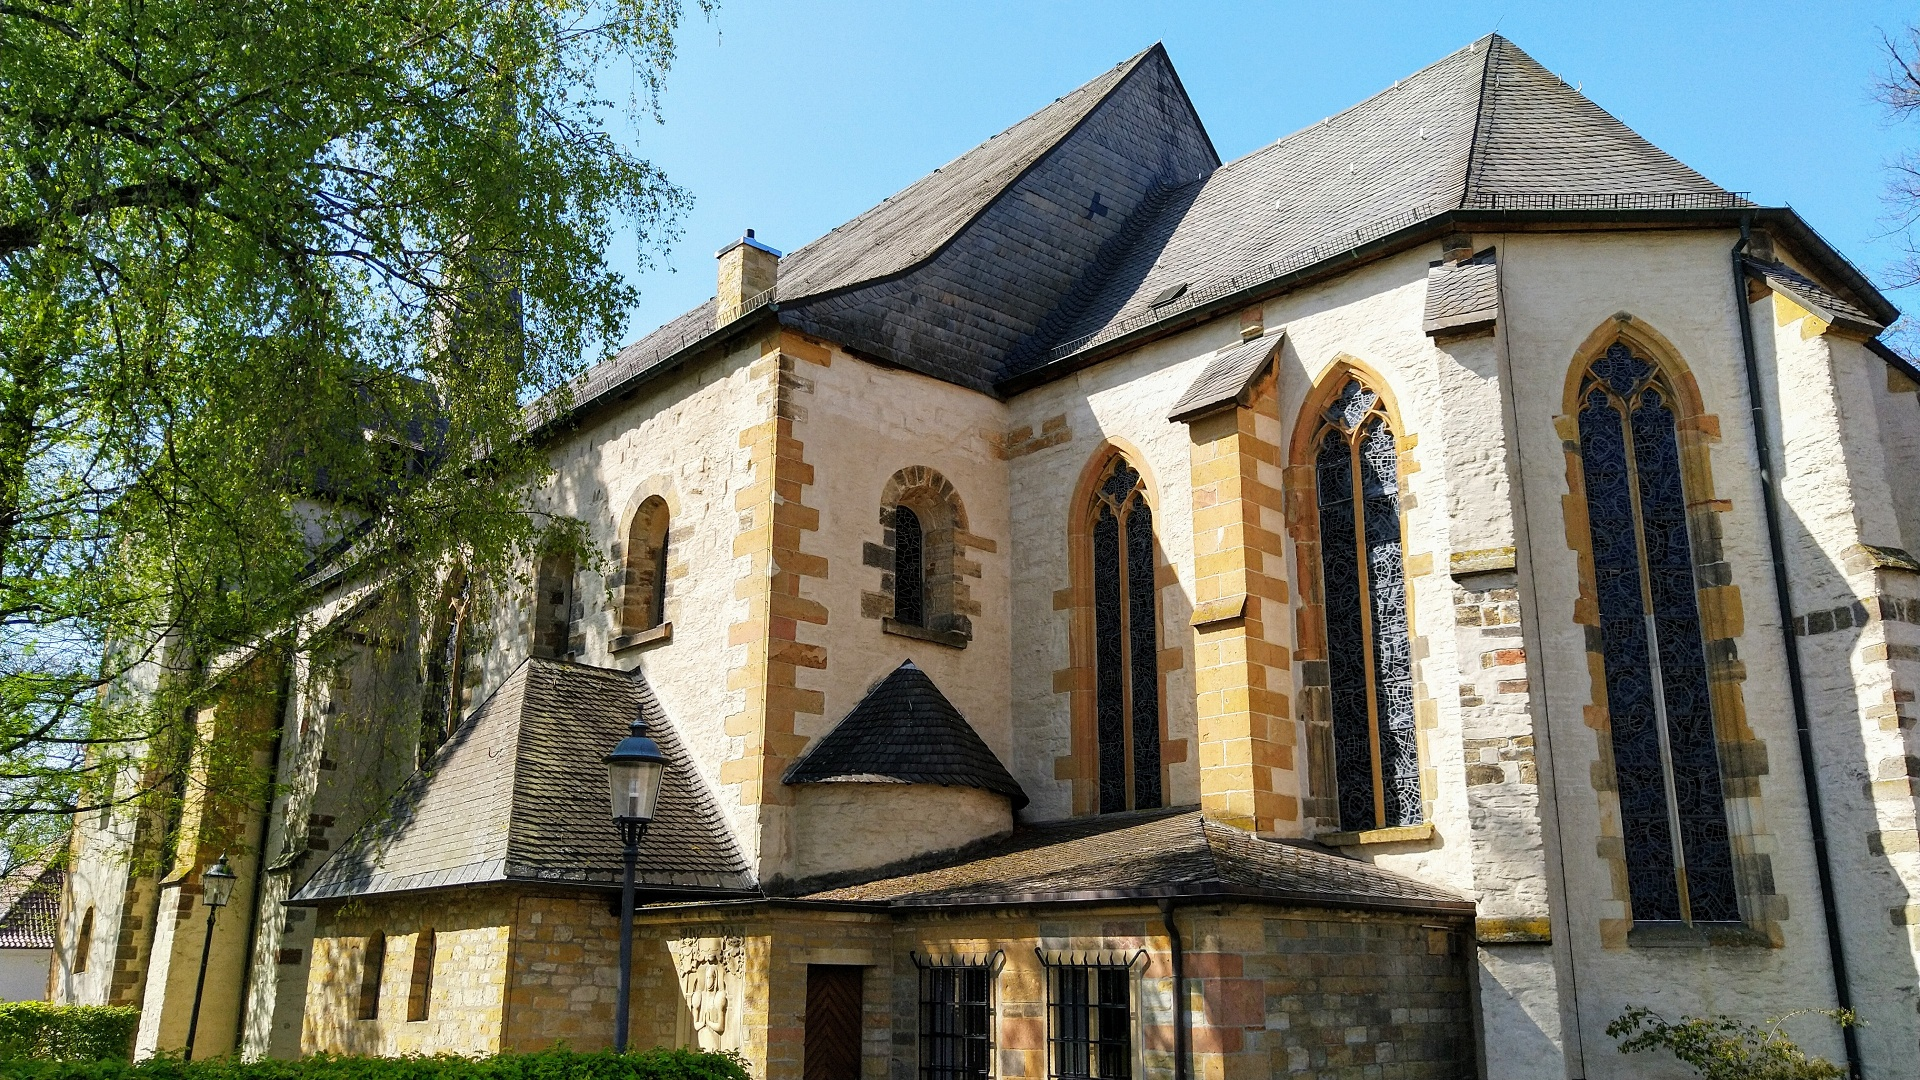 Clarholz am Kloster